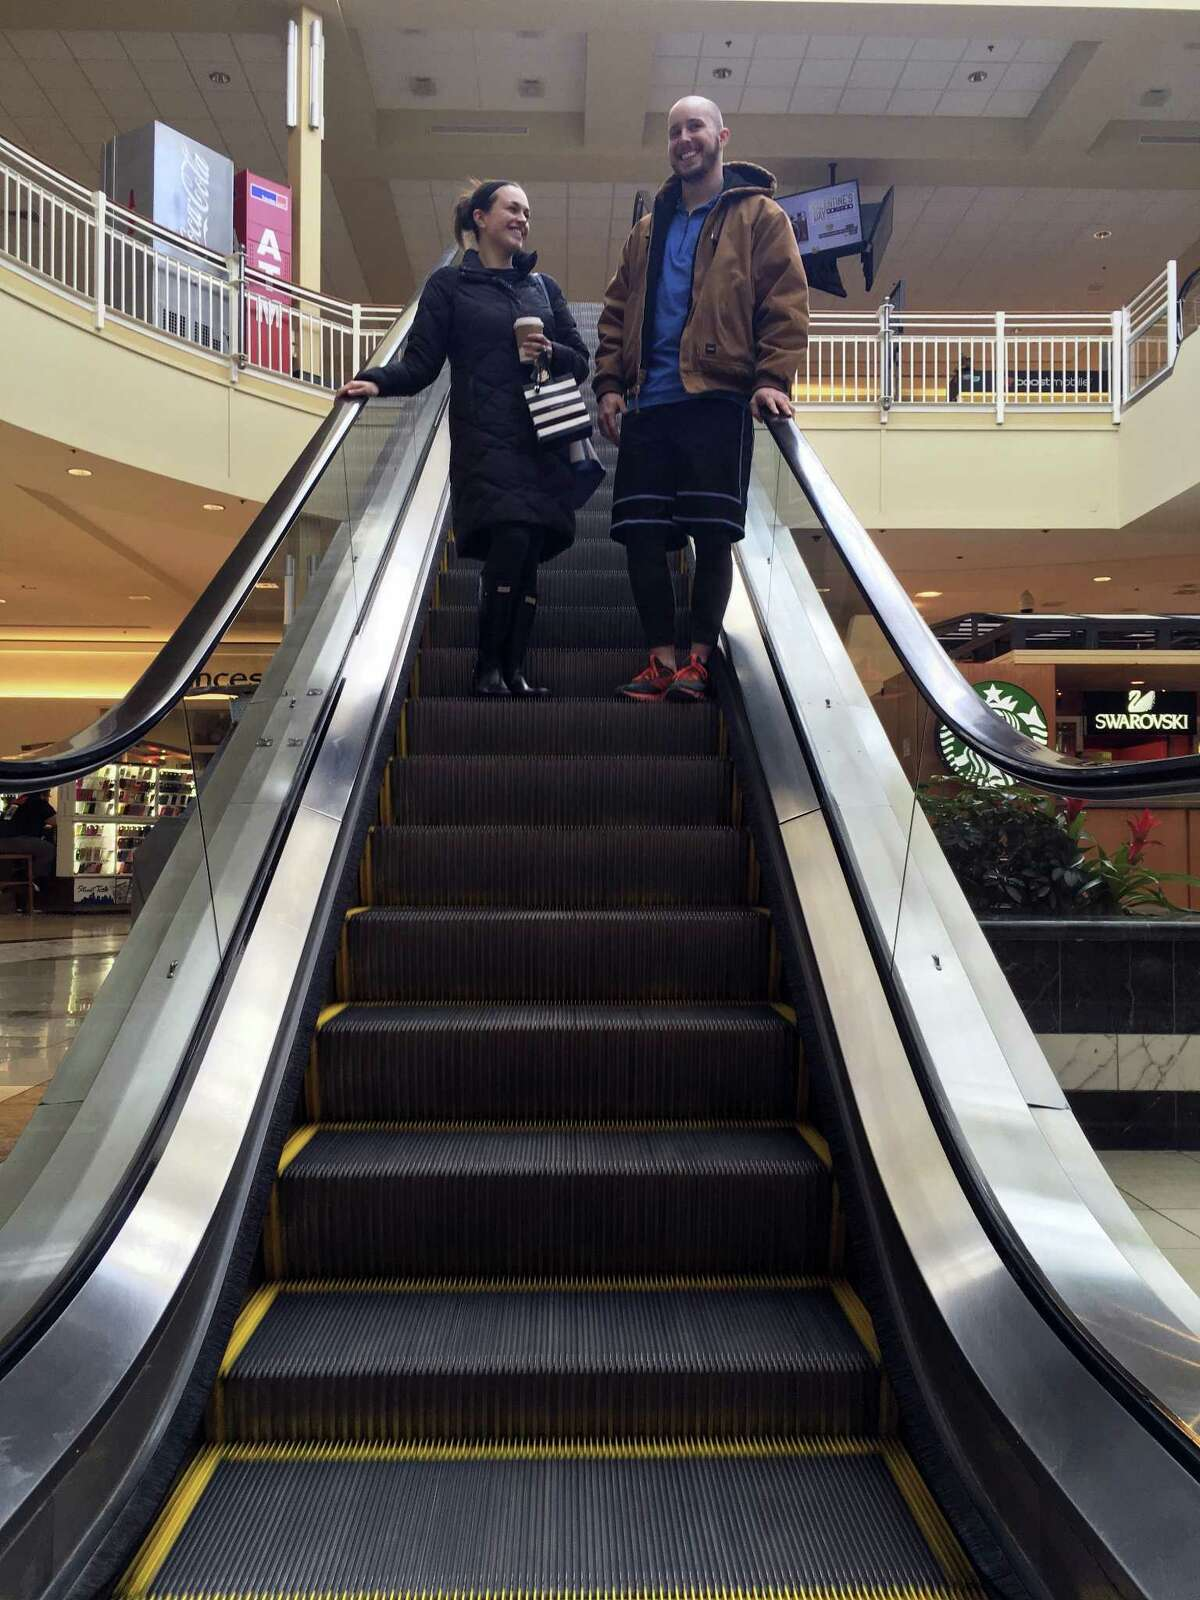 Courtney Taylor and her boyfriend, Zach Tobias, ride the escalator at a mall in Whitehall, Pa., on Feb. 9, 2017. Taylor and Tobias don't mix shopping with politics, but say it seems to be happening more often during the Donald Trump era as activists who either oppose or support the president target stores and brands for boycotts. (AP Photo/Michael Rubinkam)